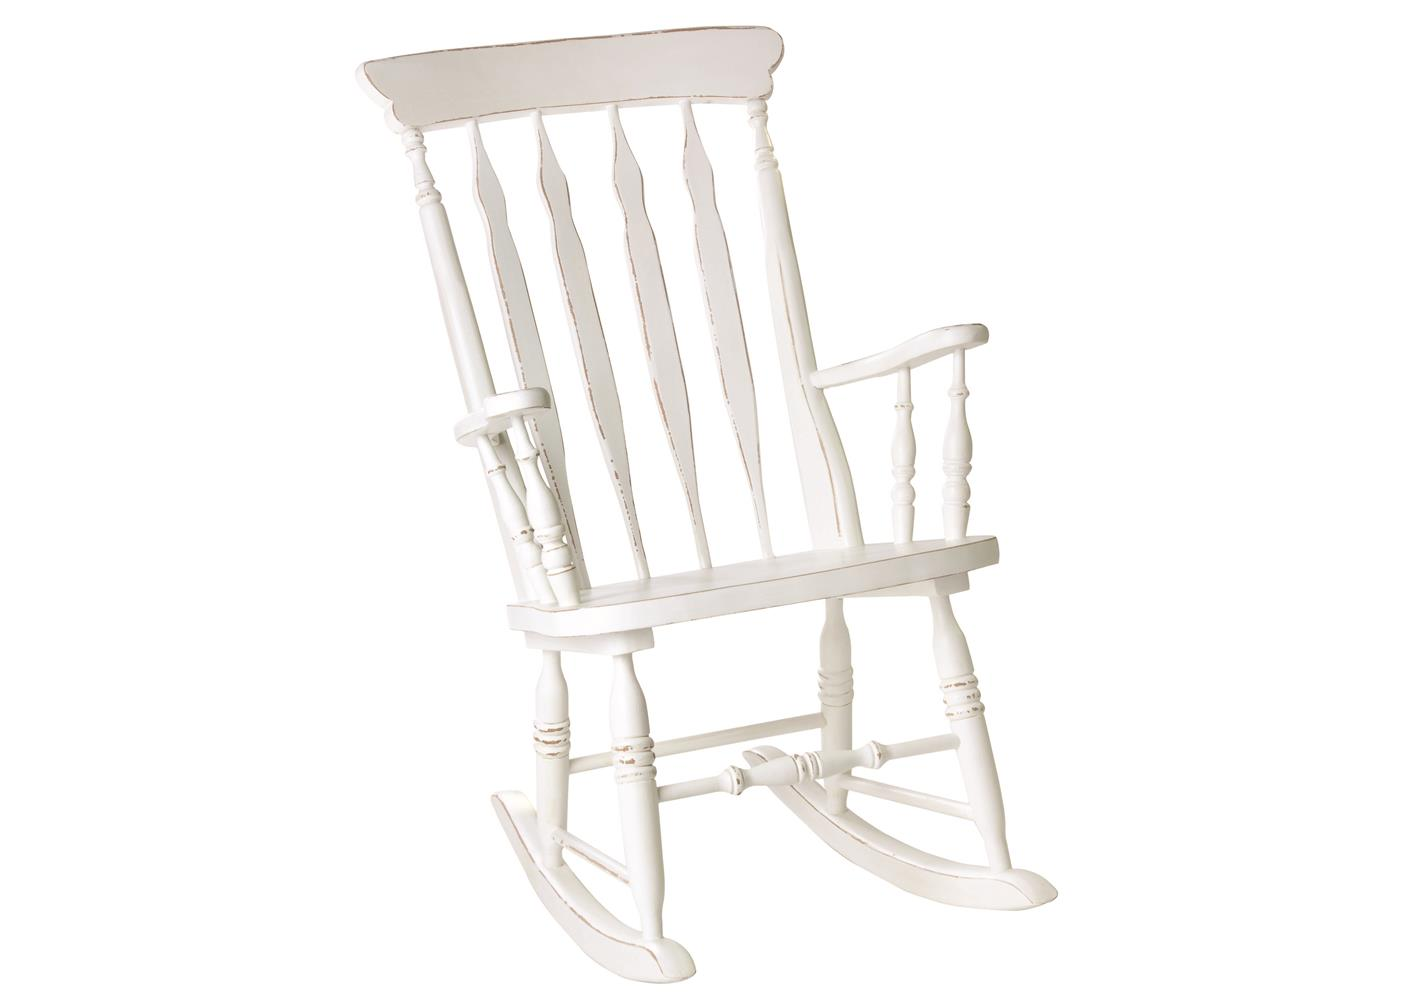 Chaise Rocking Chair Acheter Votre Chaise Rocking Chair En Pin Massif Assise